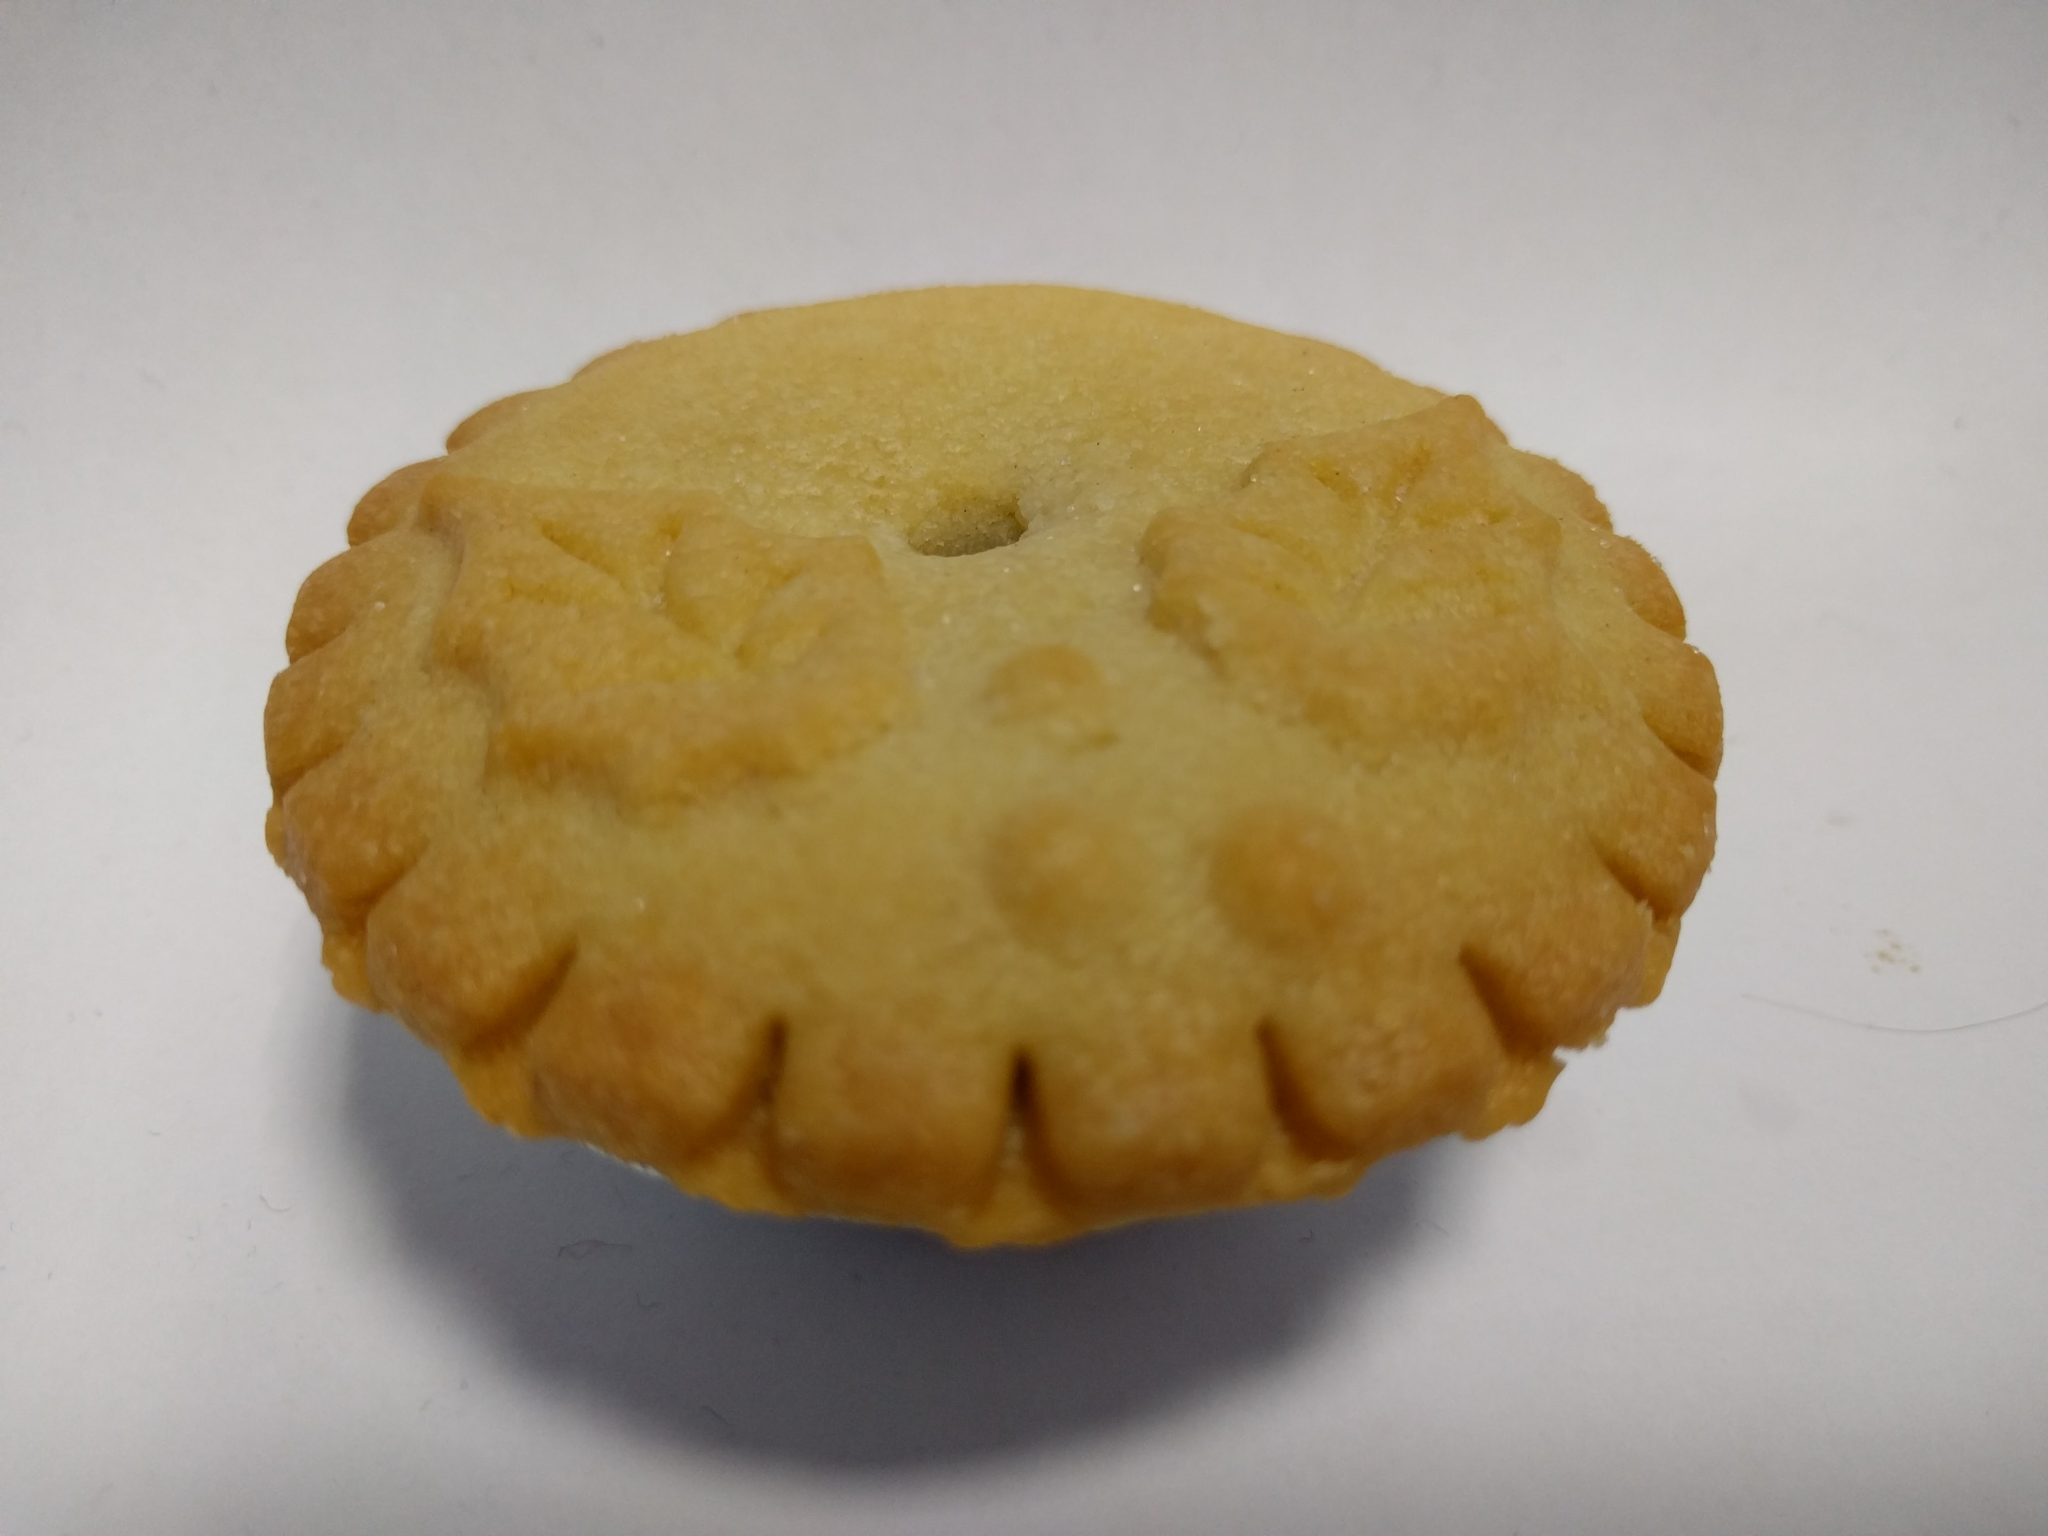 2015 Sainsbury's Taste The Difference All Butter Mince Pie